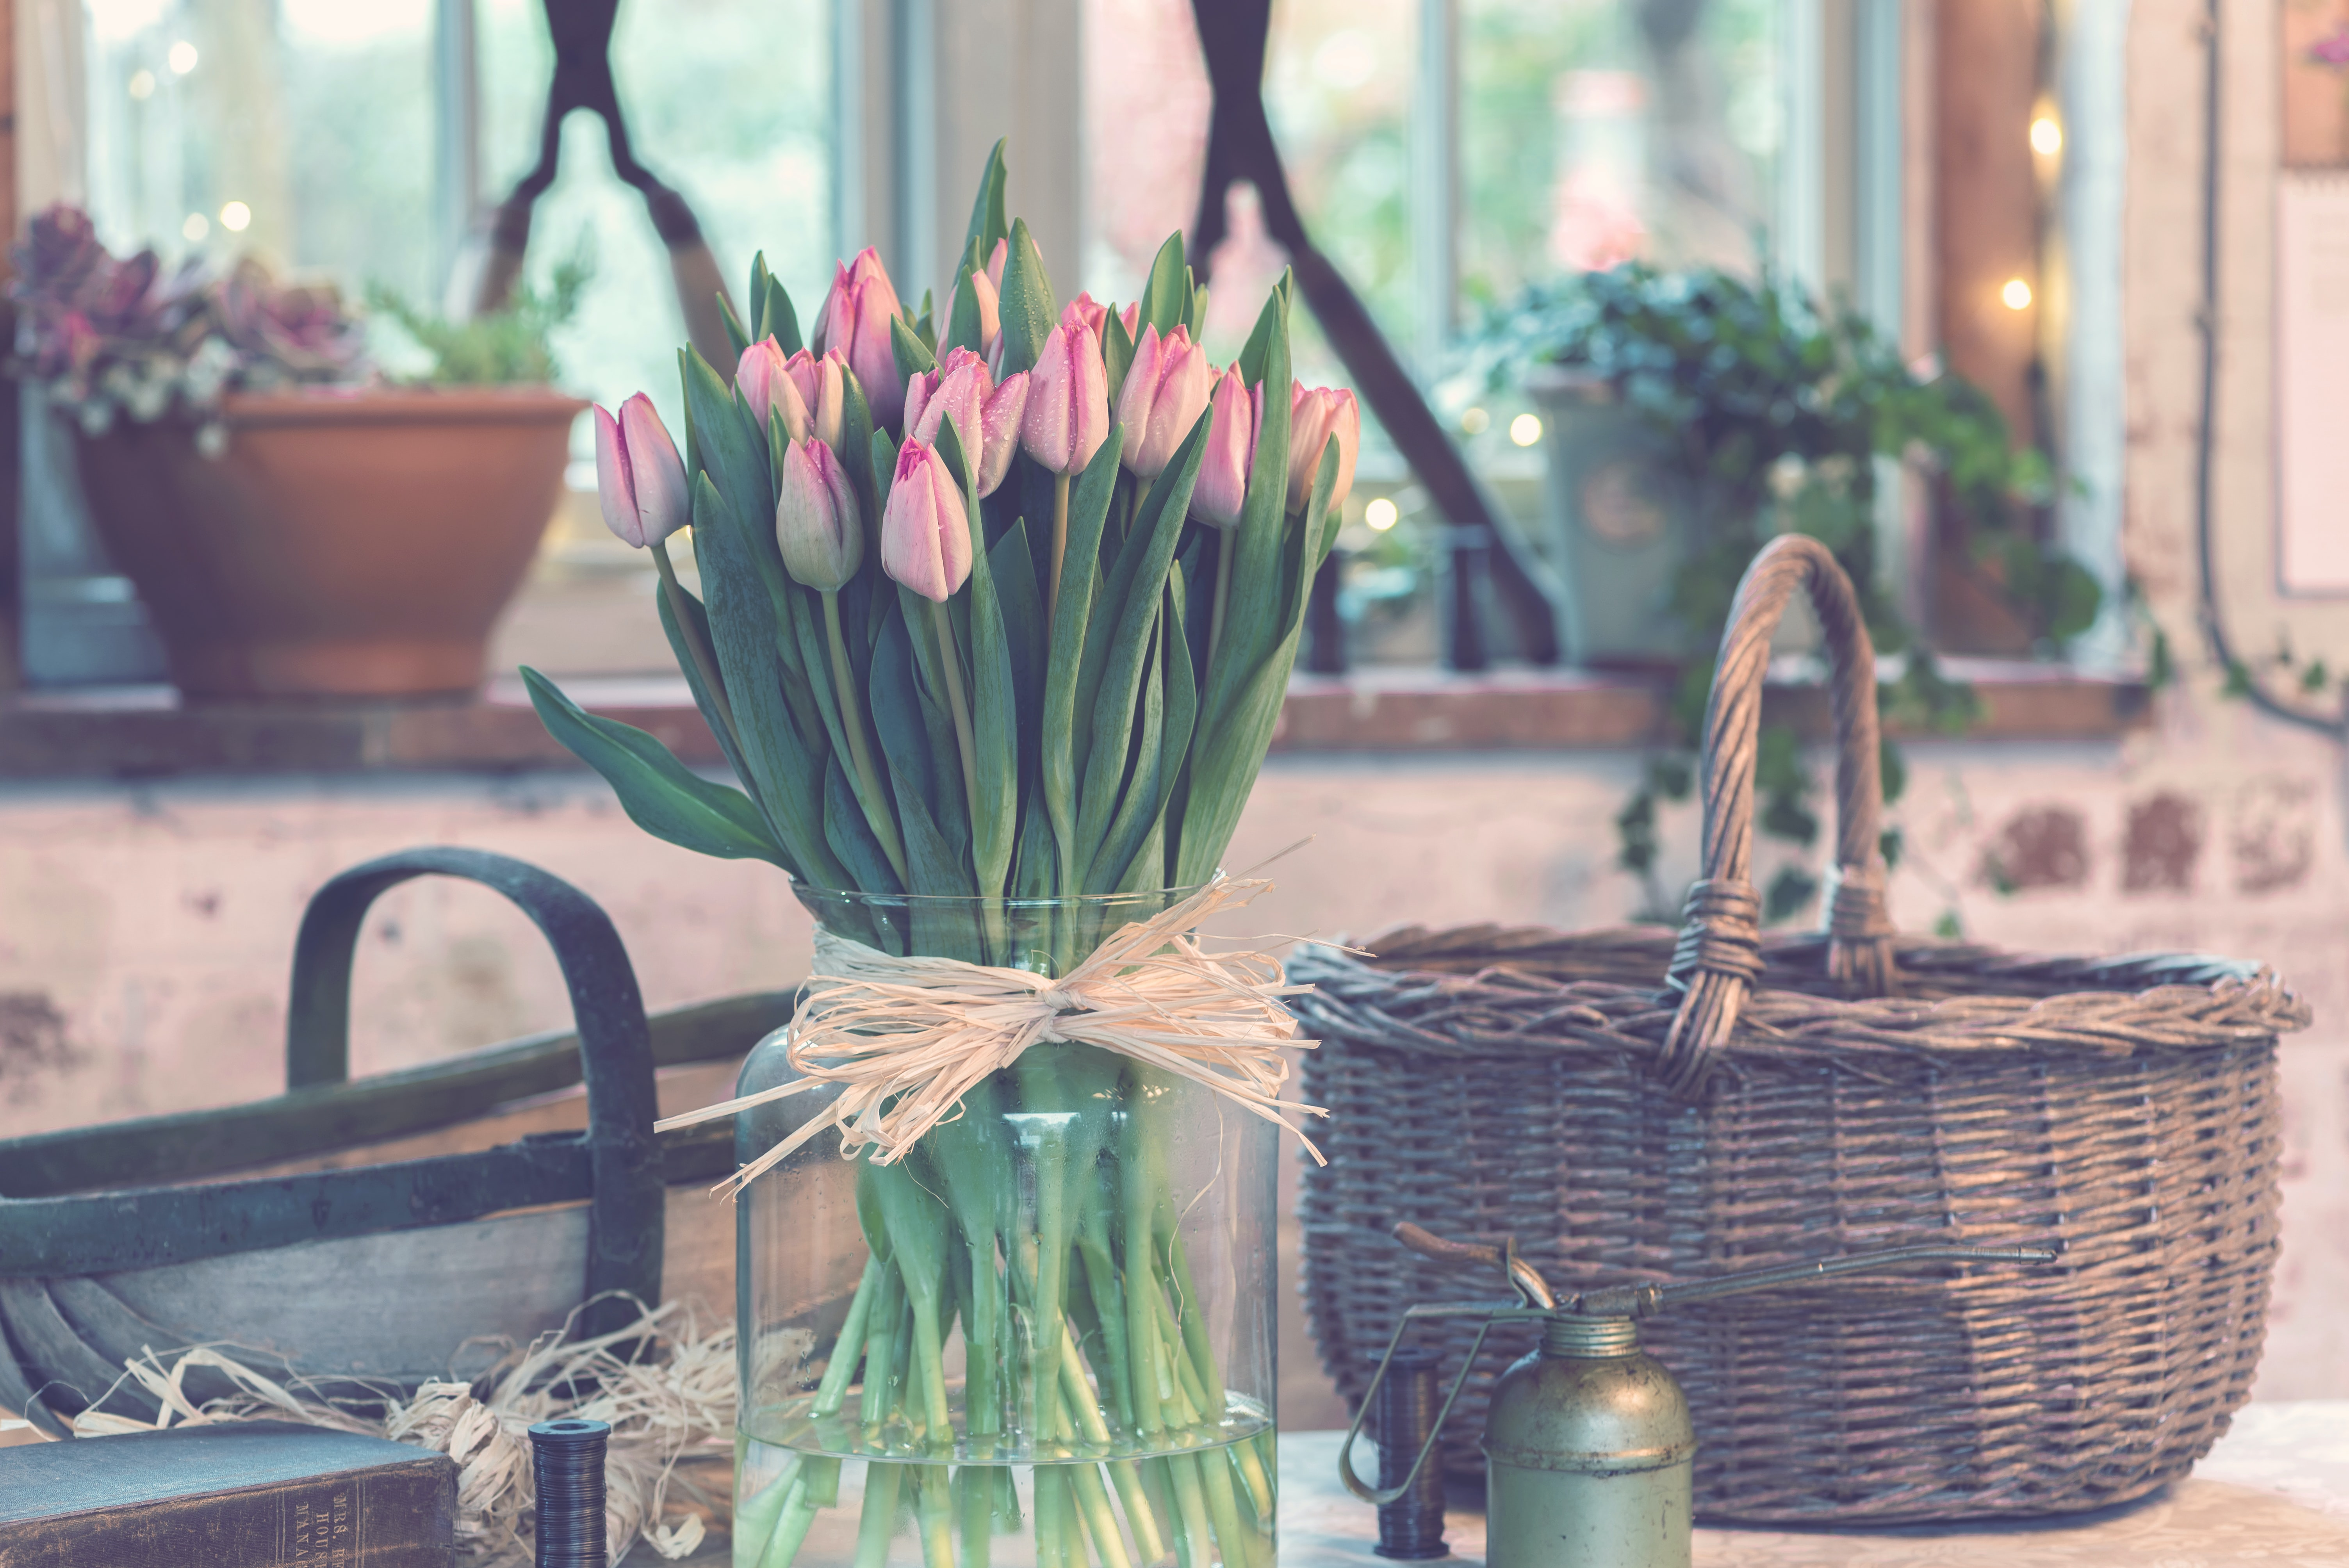 pink tulips on clear glass vase outdoor during daytime